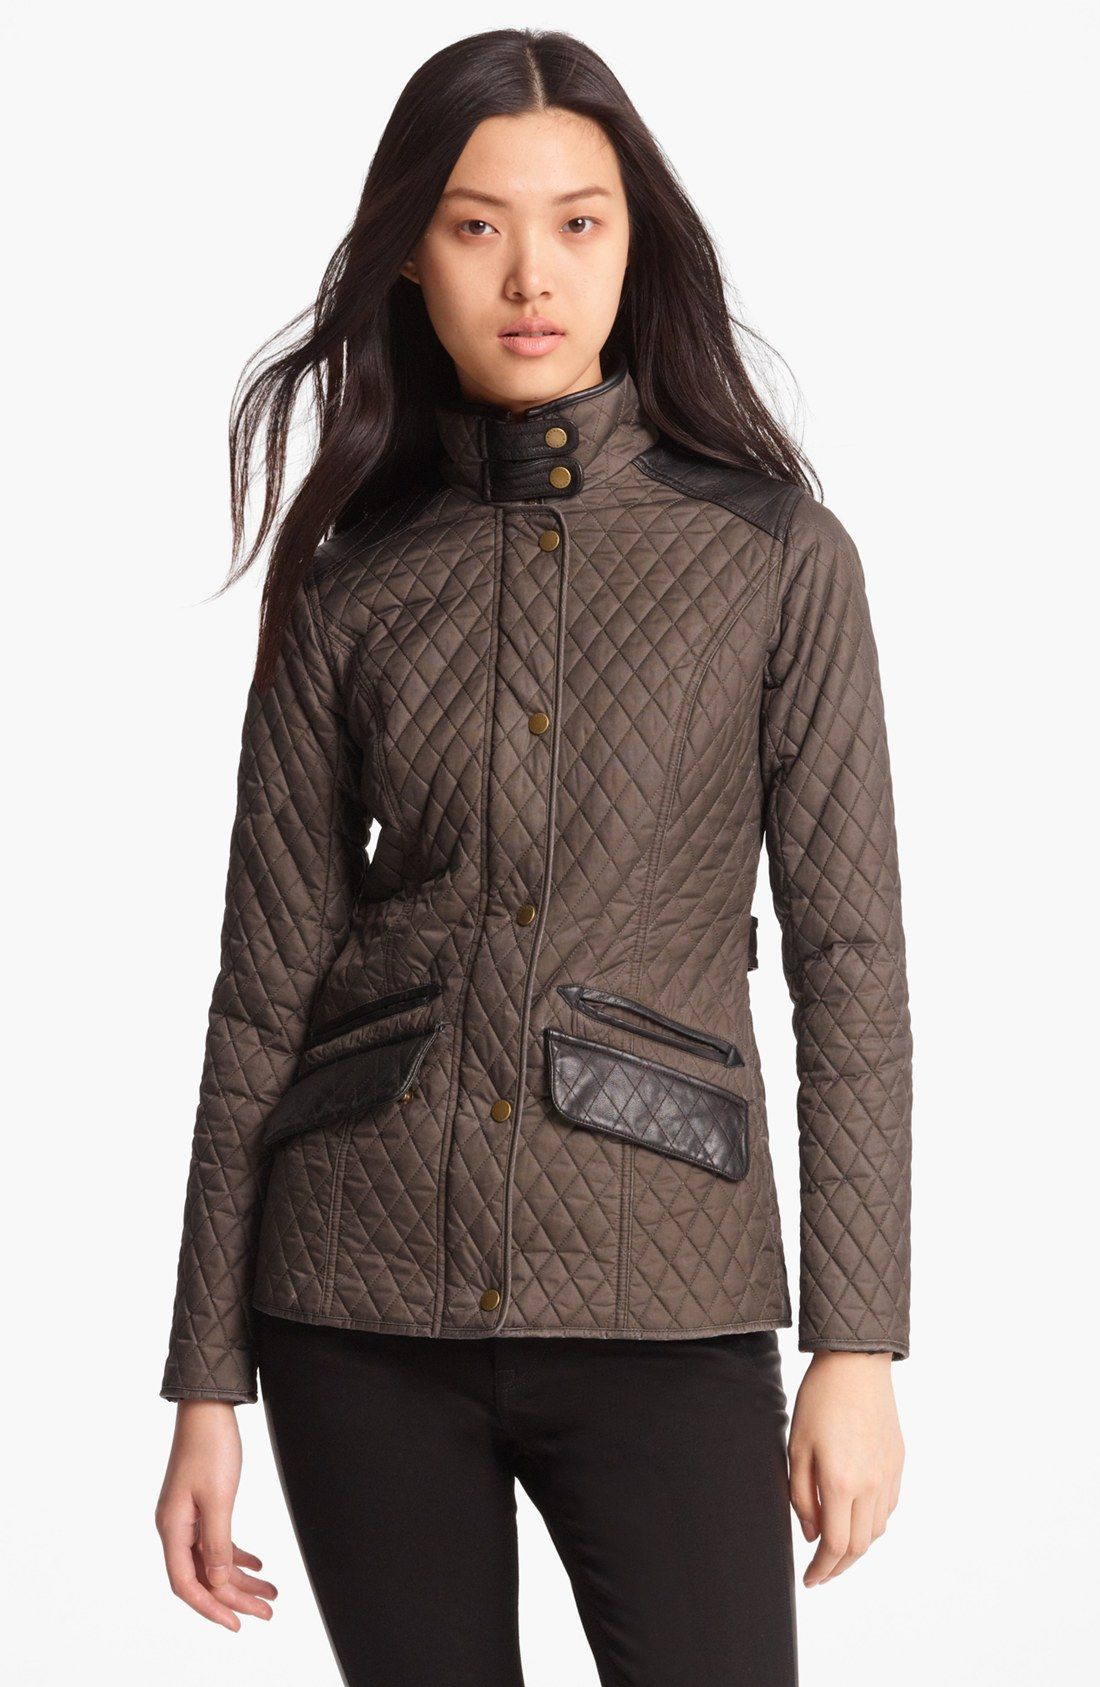 Barbour Gold Label 'Dunberry' Quilted Jacket For Women | THINGS I ... : gold quilted jacket - Adamdwight.com